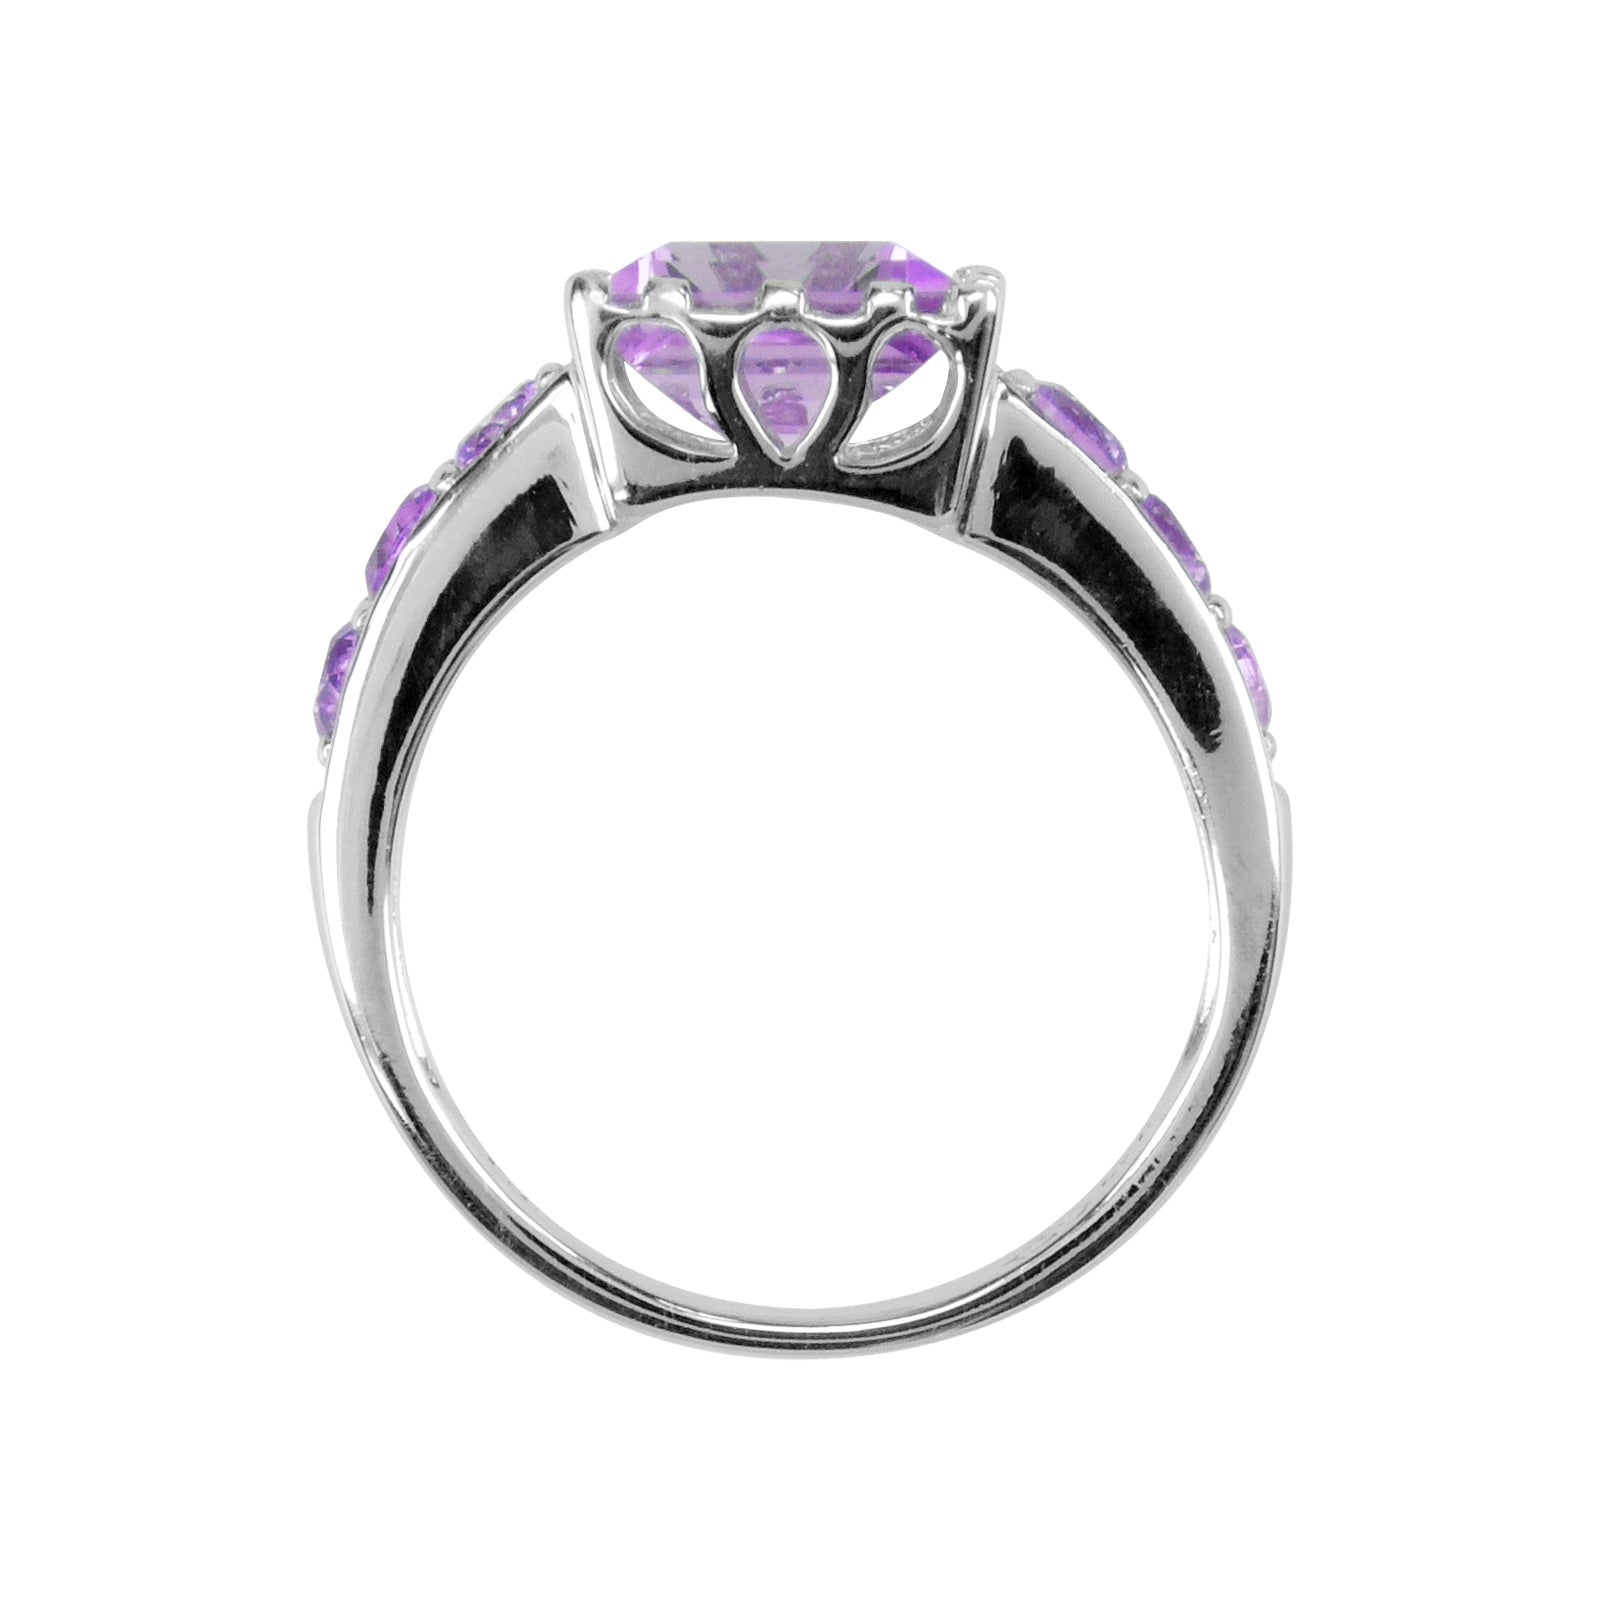 Square Cut Amethyst Ring, Sterling Silver